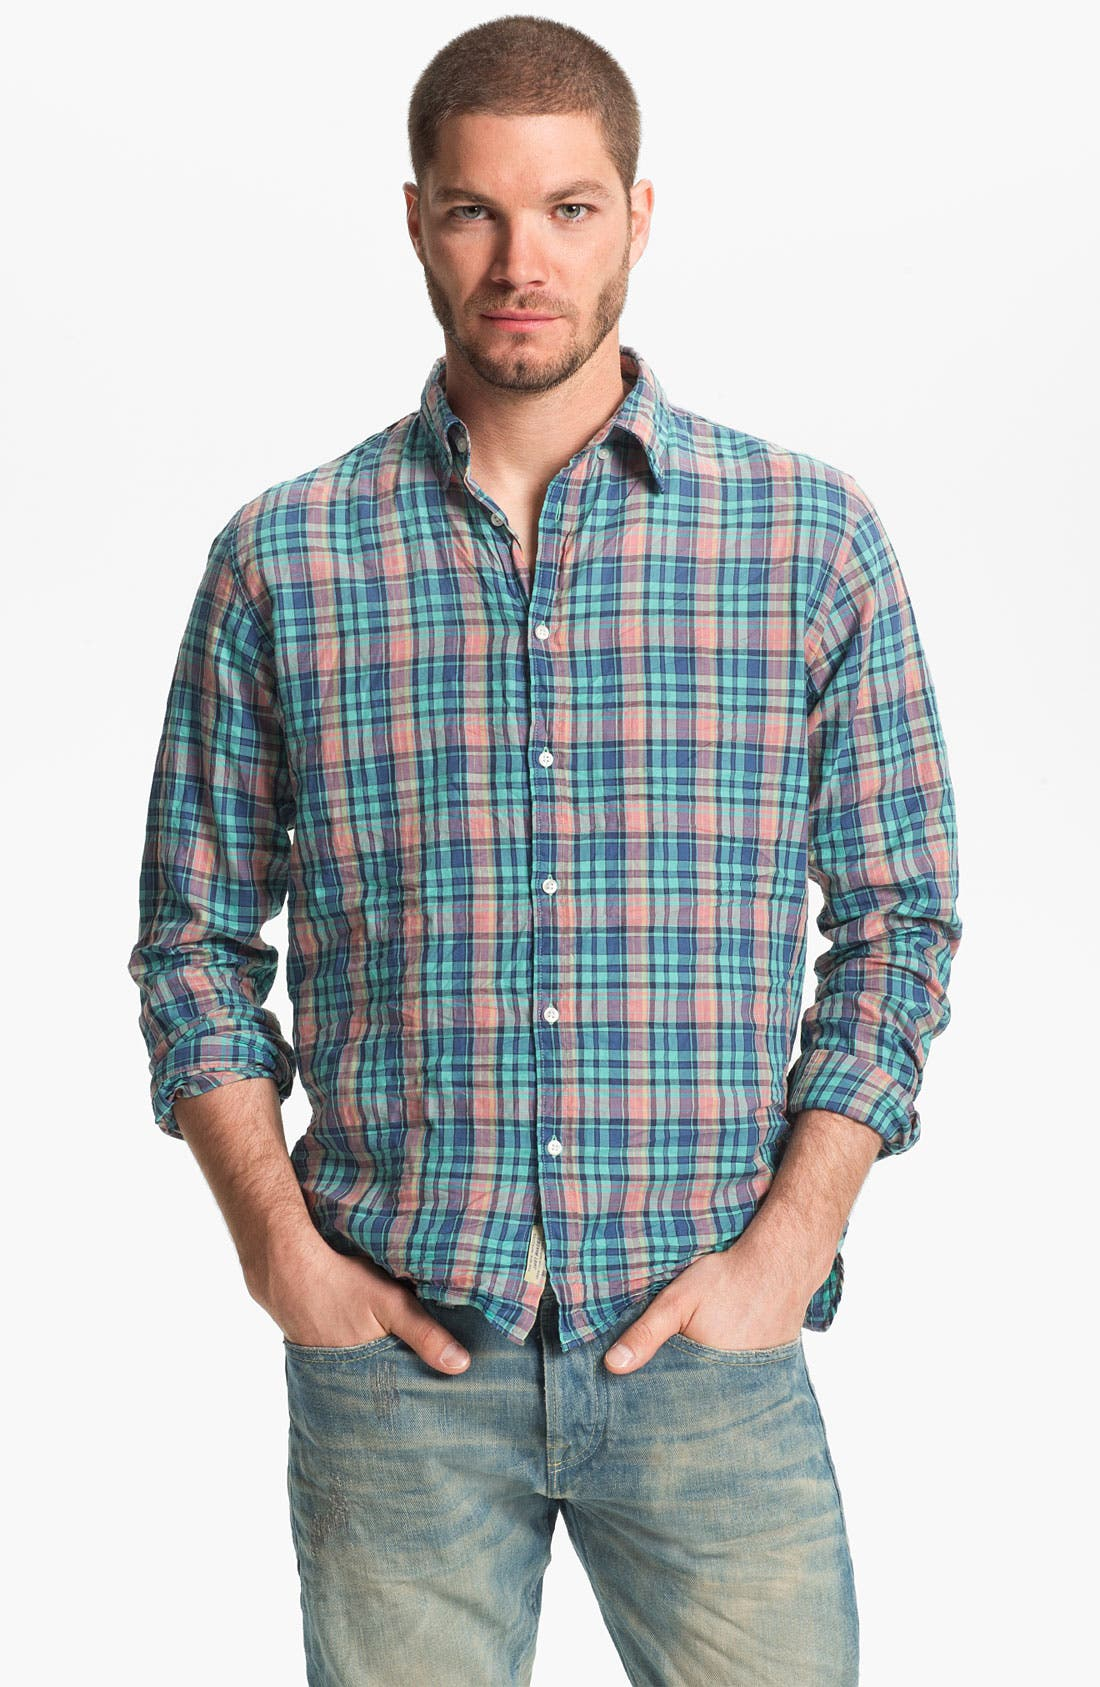 Alternate Image 1 Selected - Scotch & Soda Plaid Woven Shirt